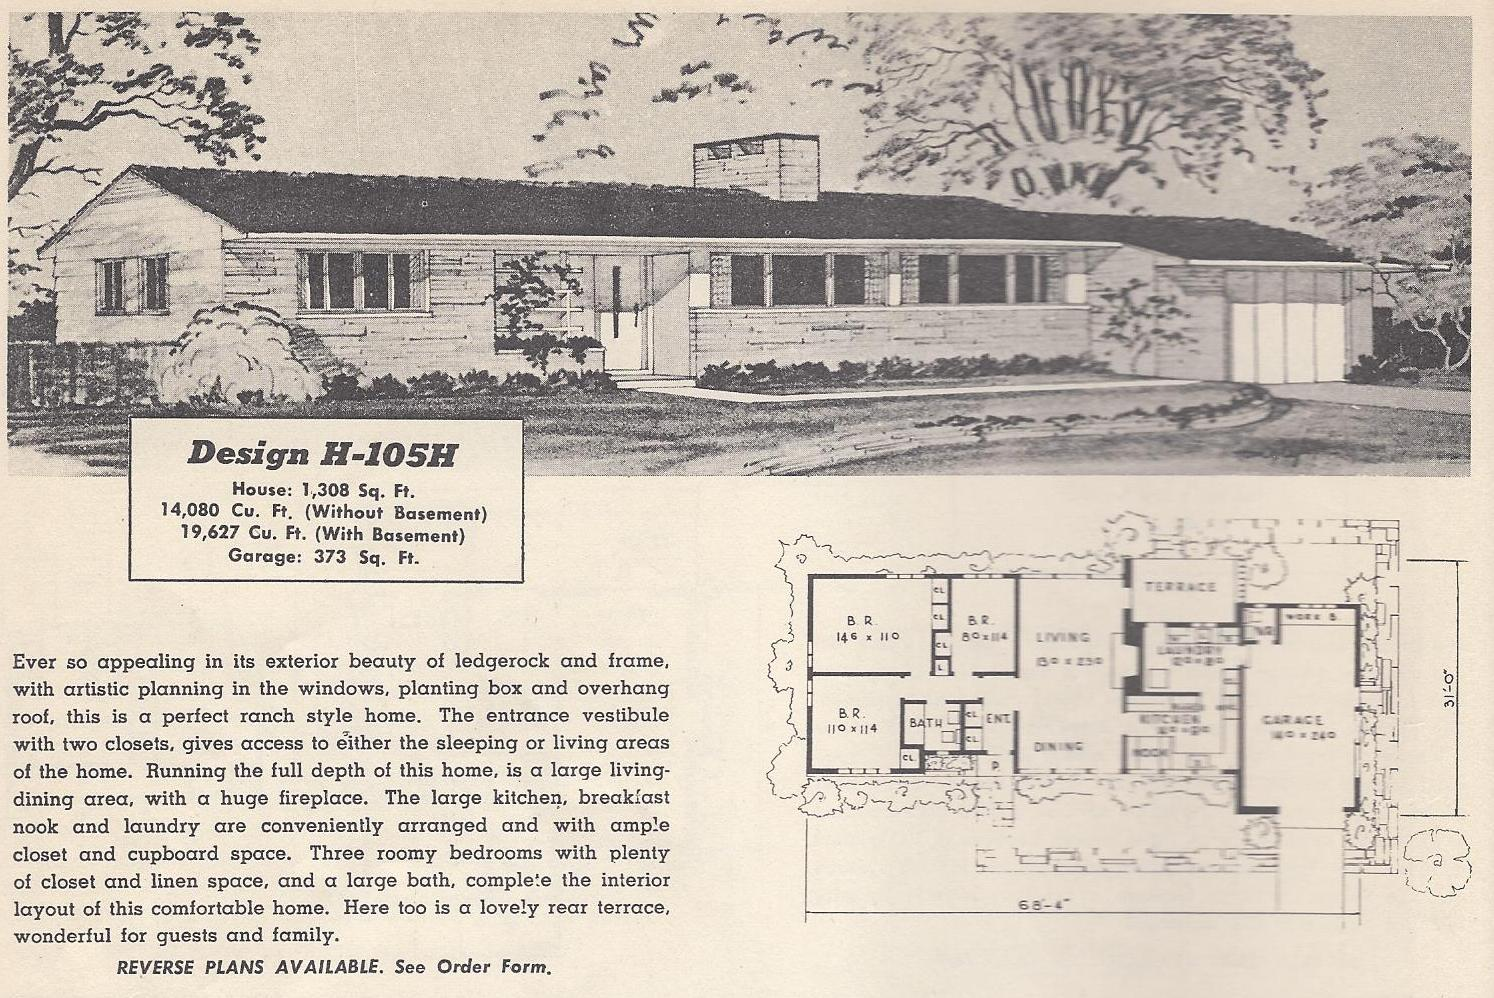 Vintage house plans 105h antique alter ego Old ranch house plans